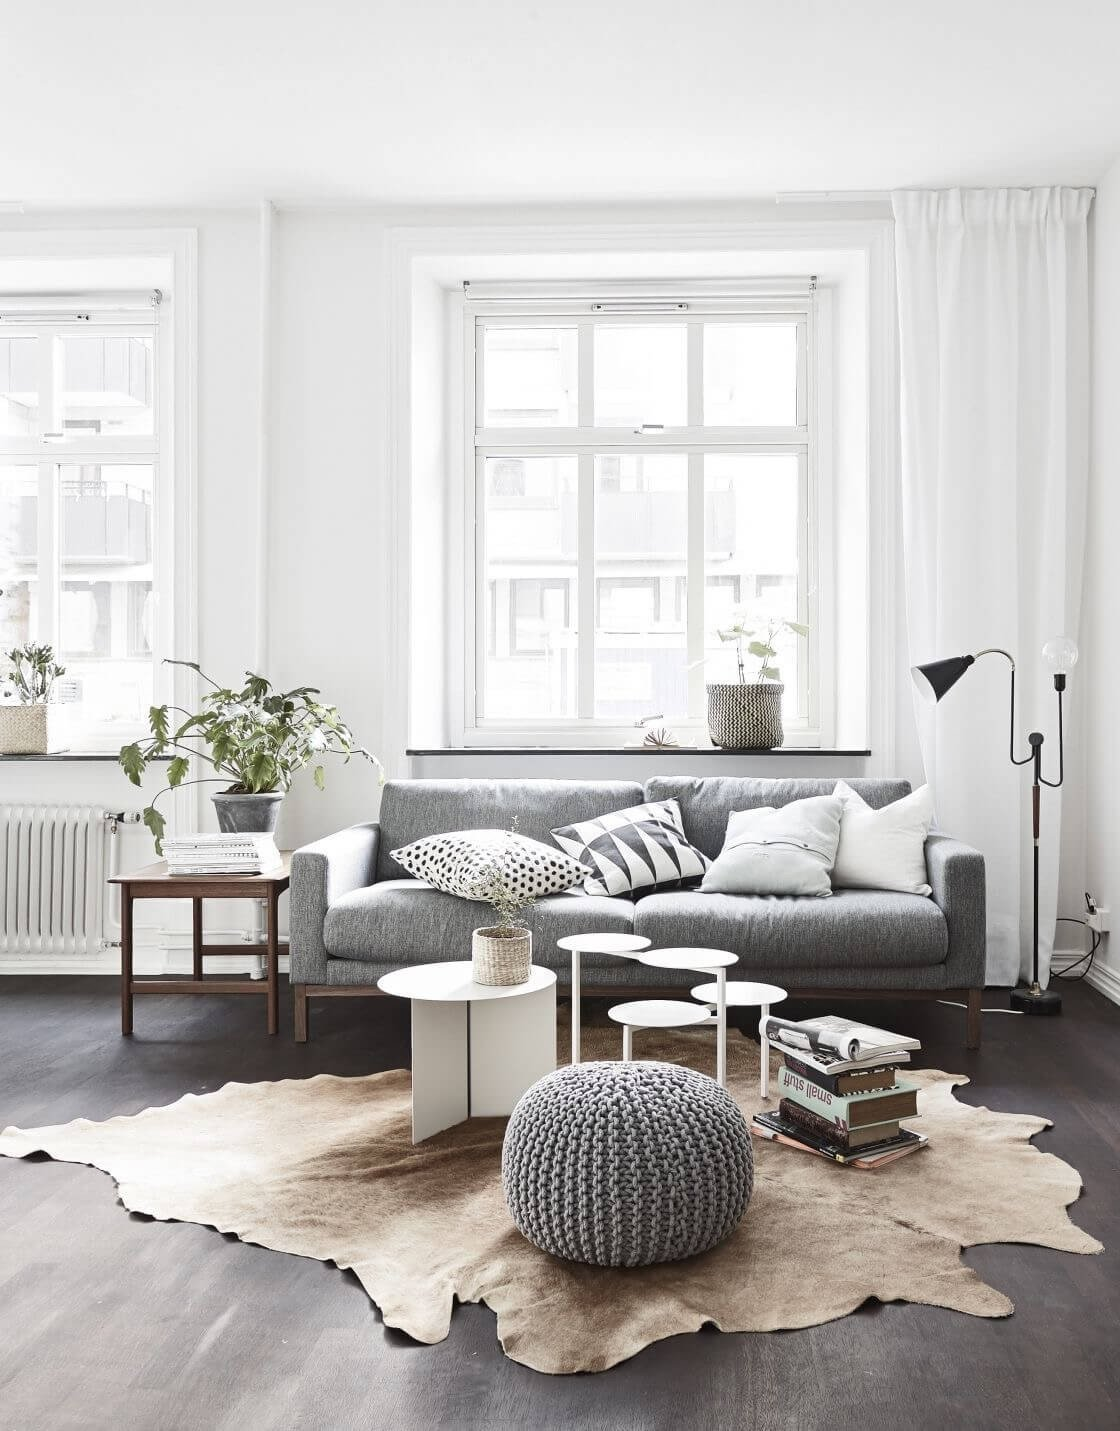 Living Room Ideas Contemporary Luxury 26 Best Modern Living Room Decorating Ideas and Designs